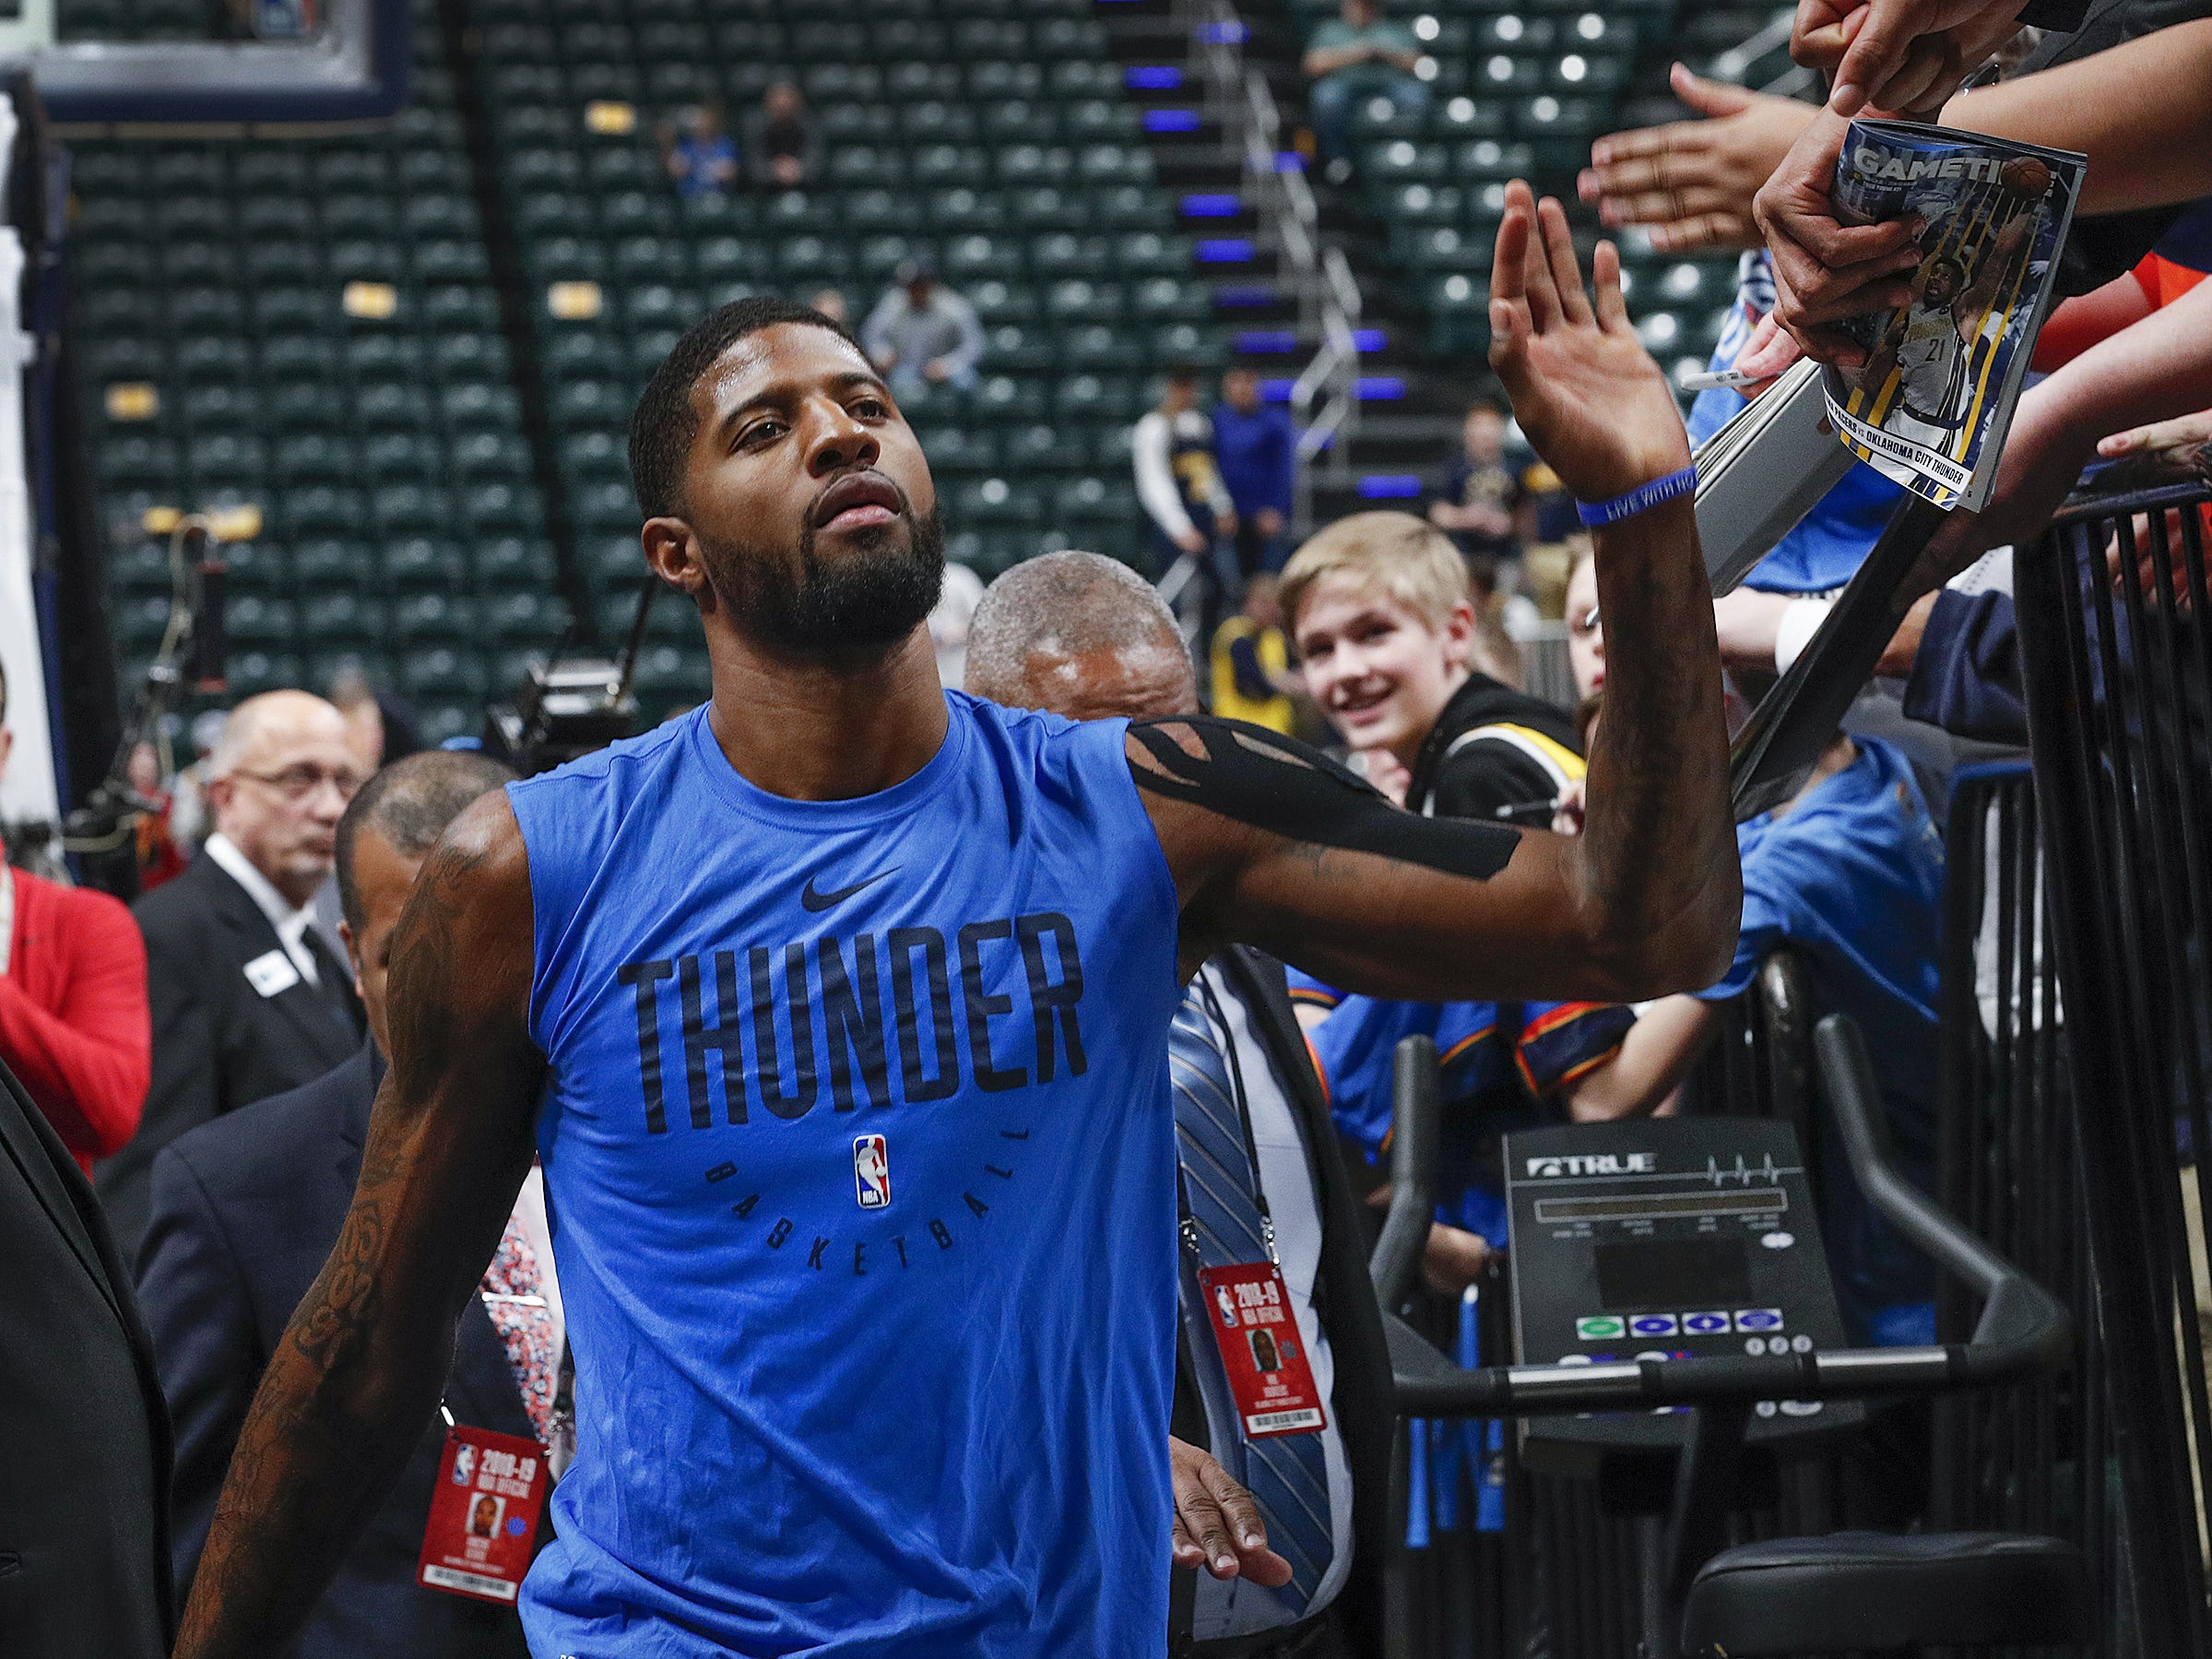 Oklahoma City Thunder forward Paul George (13) high fives some of his fans as he leaves the court following the pregame warm up before the start of their game against the Indiana Pacers at Bankers Life Fieldhouse on Thursday, Mar., 14, 2019.